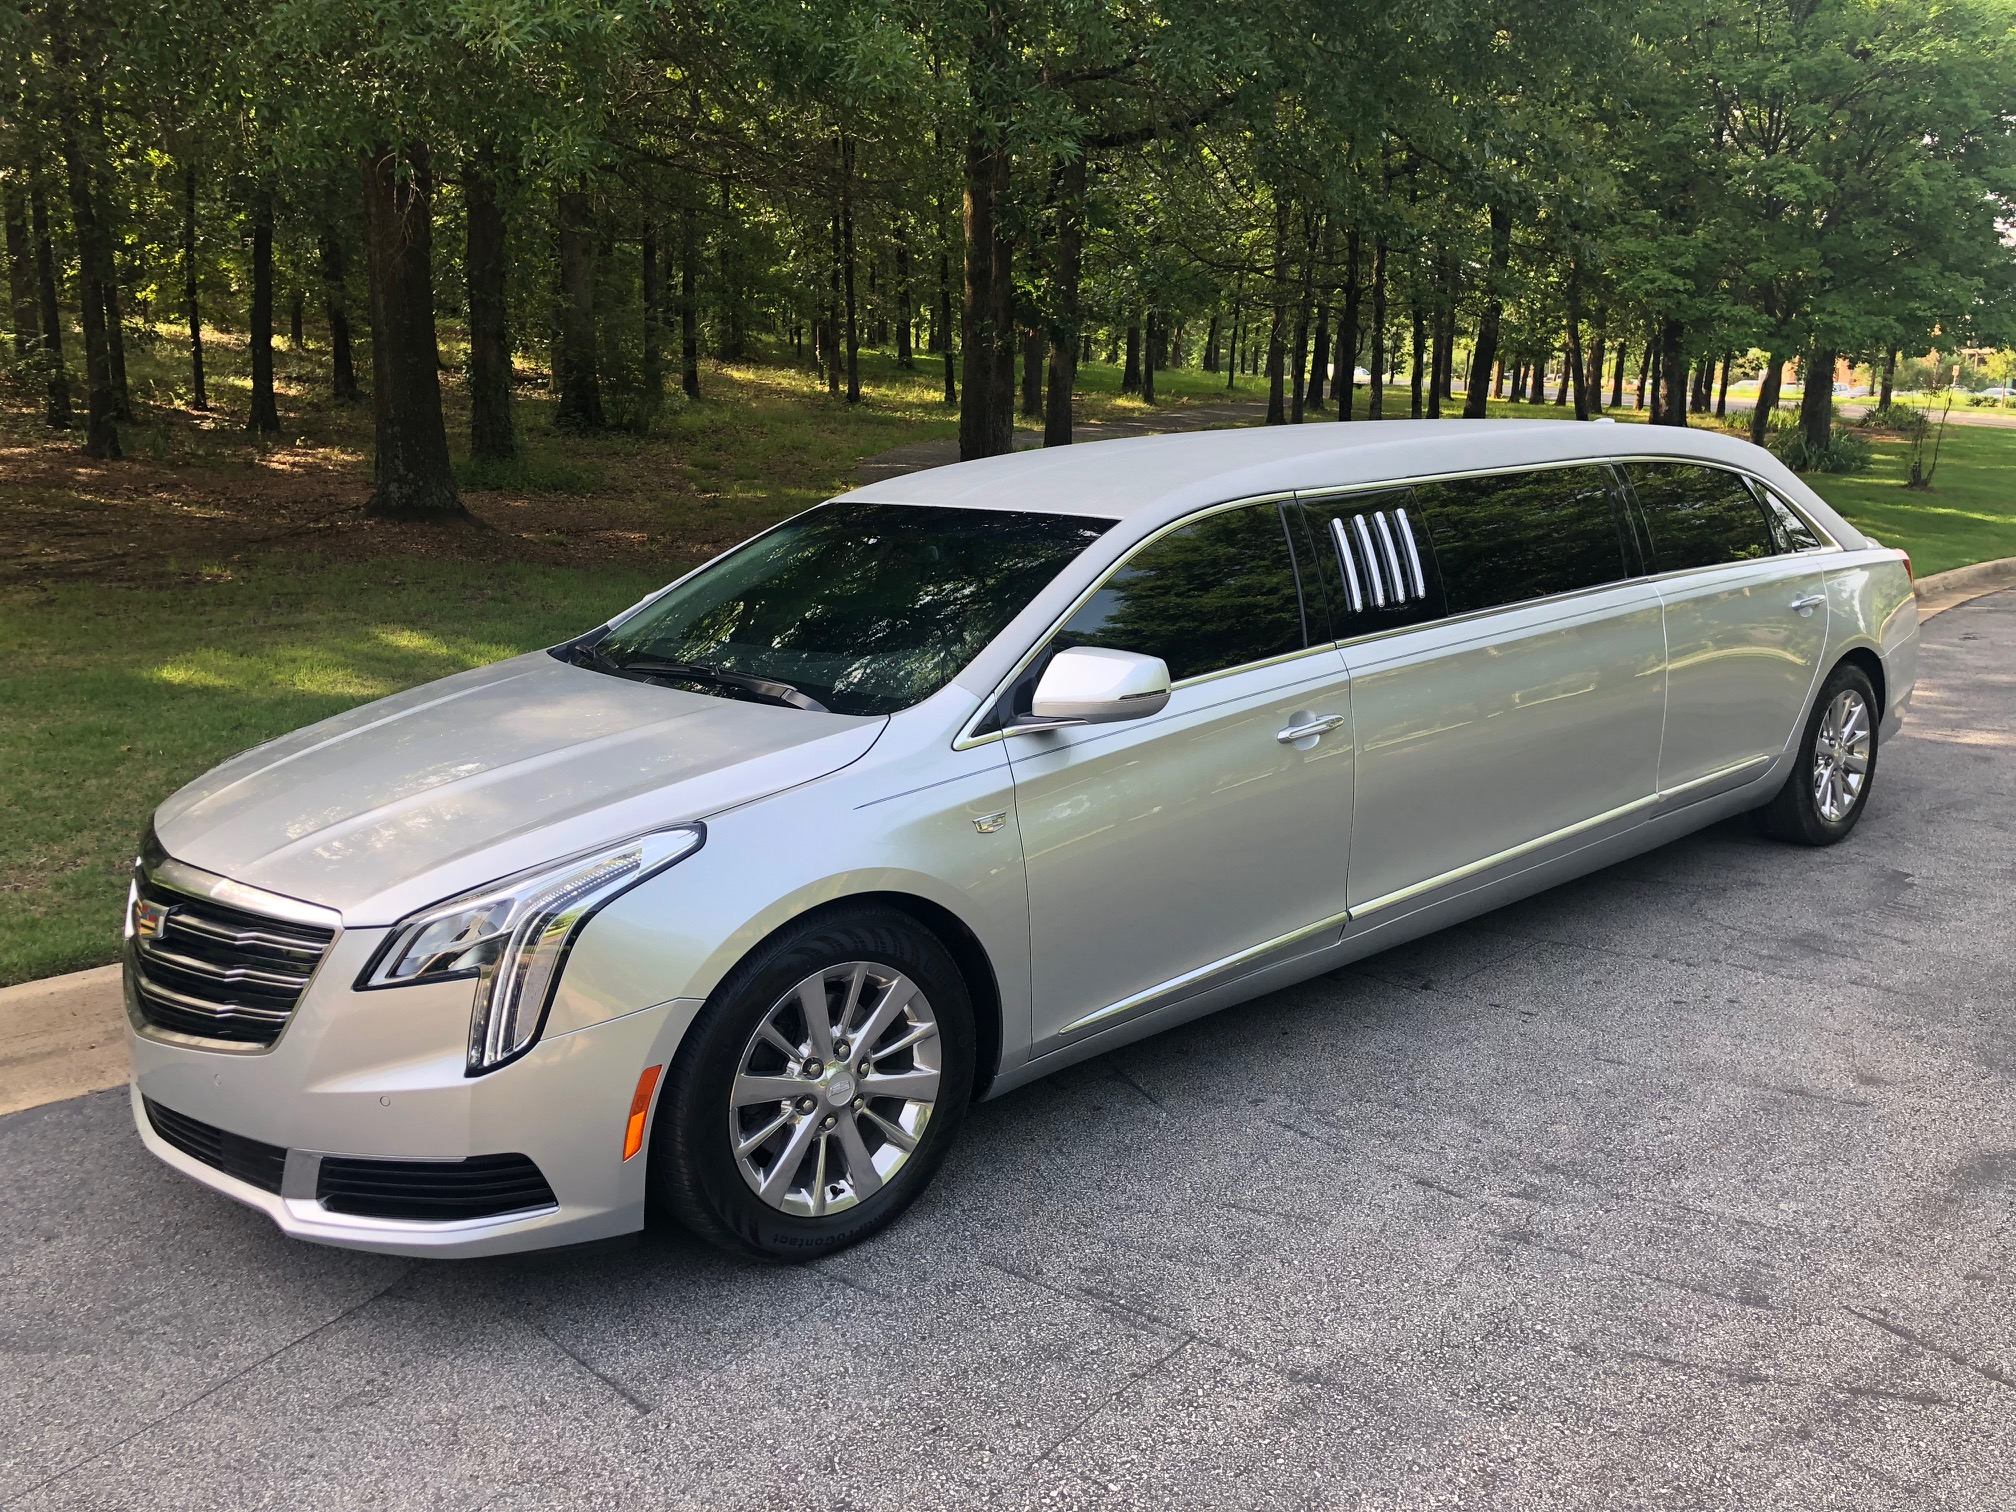 Limo For Sale >> Xts 70 Armbruster Stageway Limousine For Sale